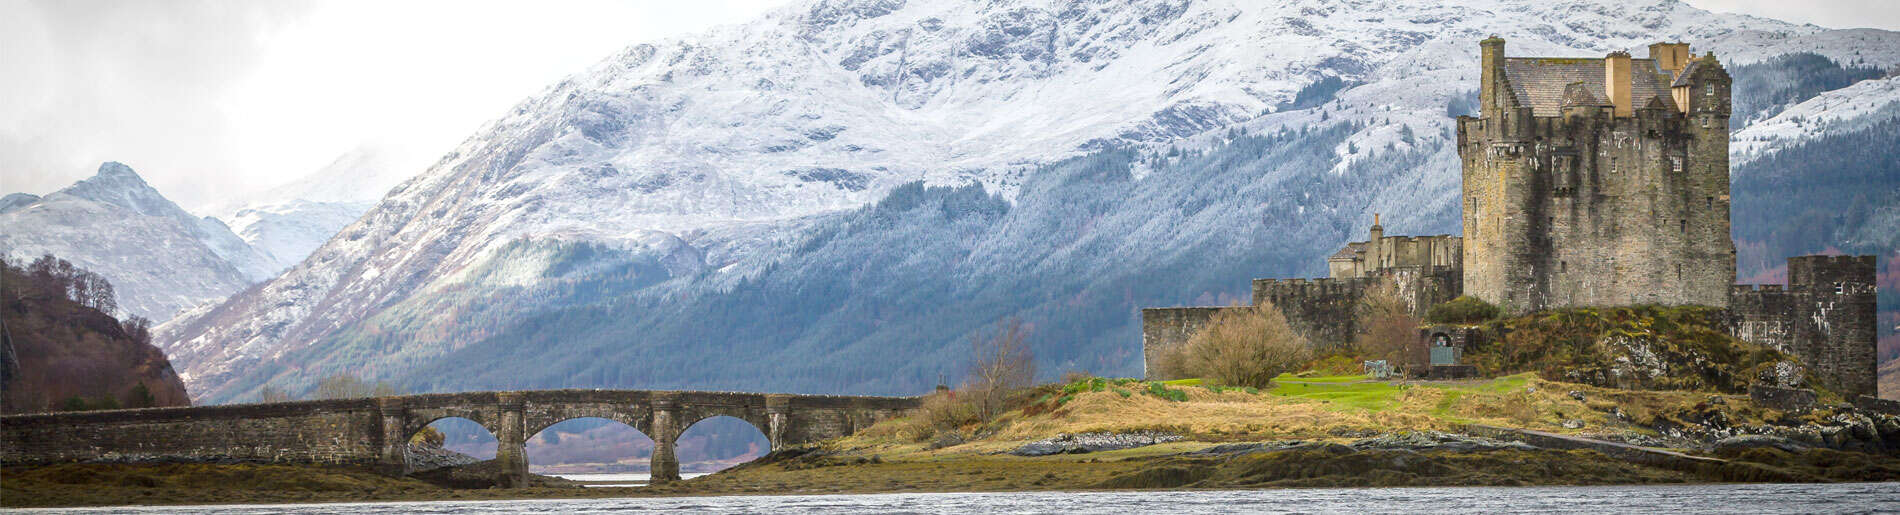 The Grand Scottish Textile Tour by Hello Voyager visits the Highlands in Scotland.